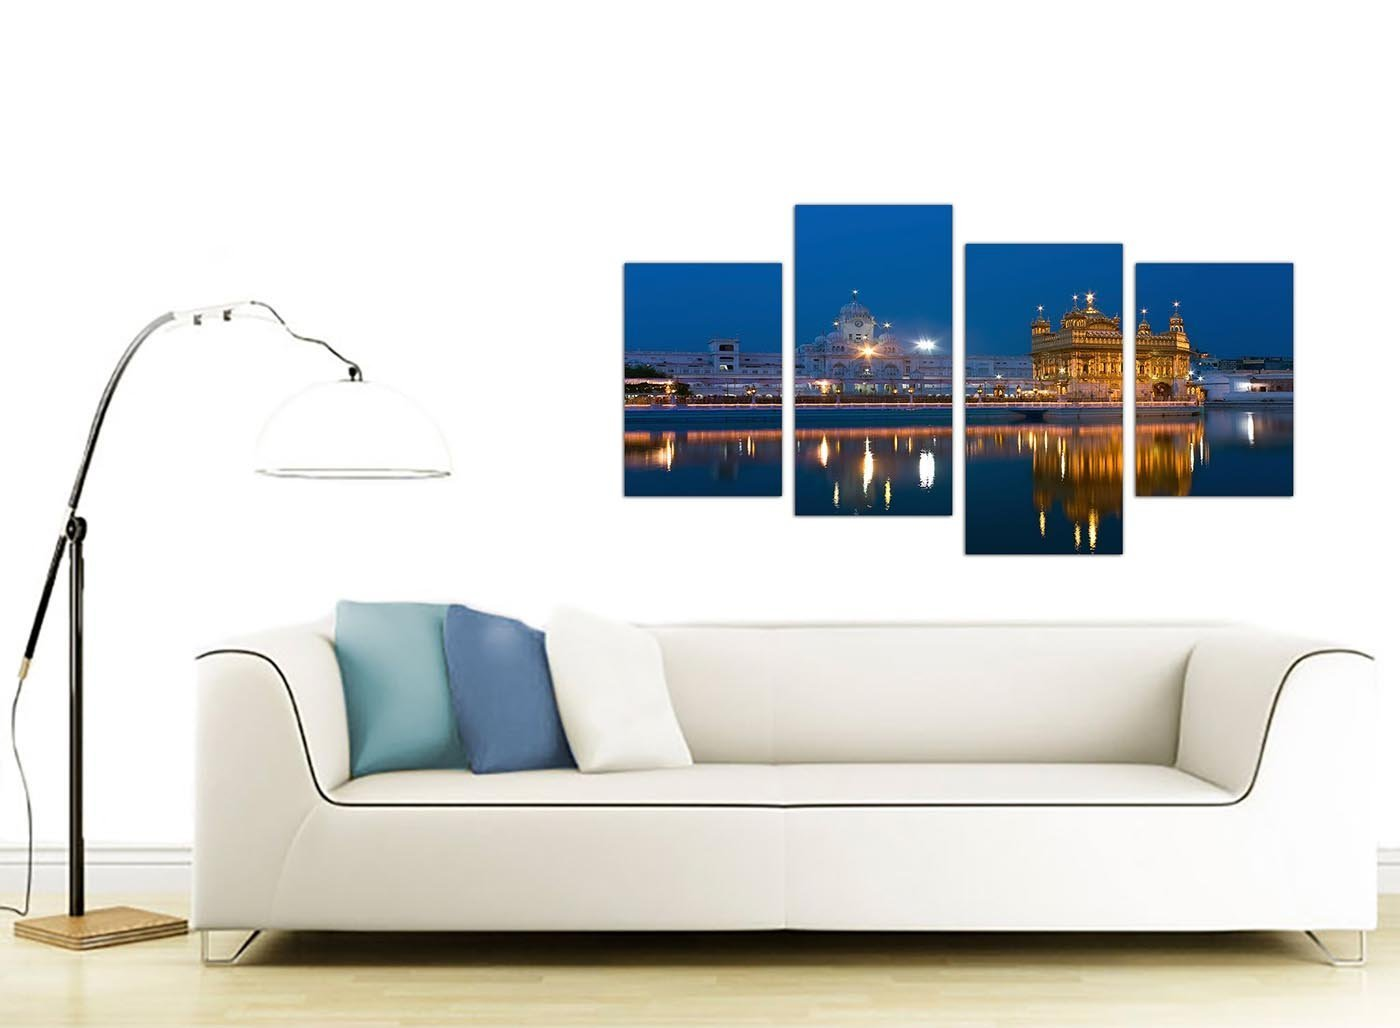 amazon com large sikh canvas wall art pictures of the golden amazon com large sikh canvas wall art pictures of the golden temple at amritsar set of 4 multi panel artwork modern split canvases xl 130cm wide